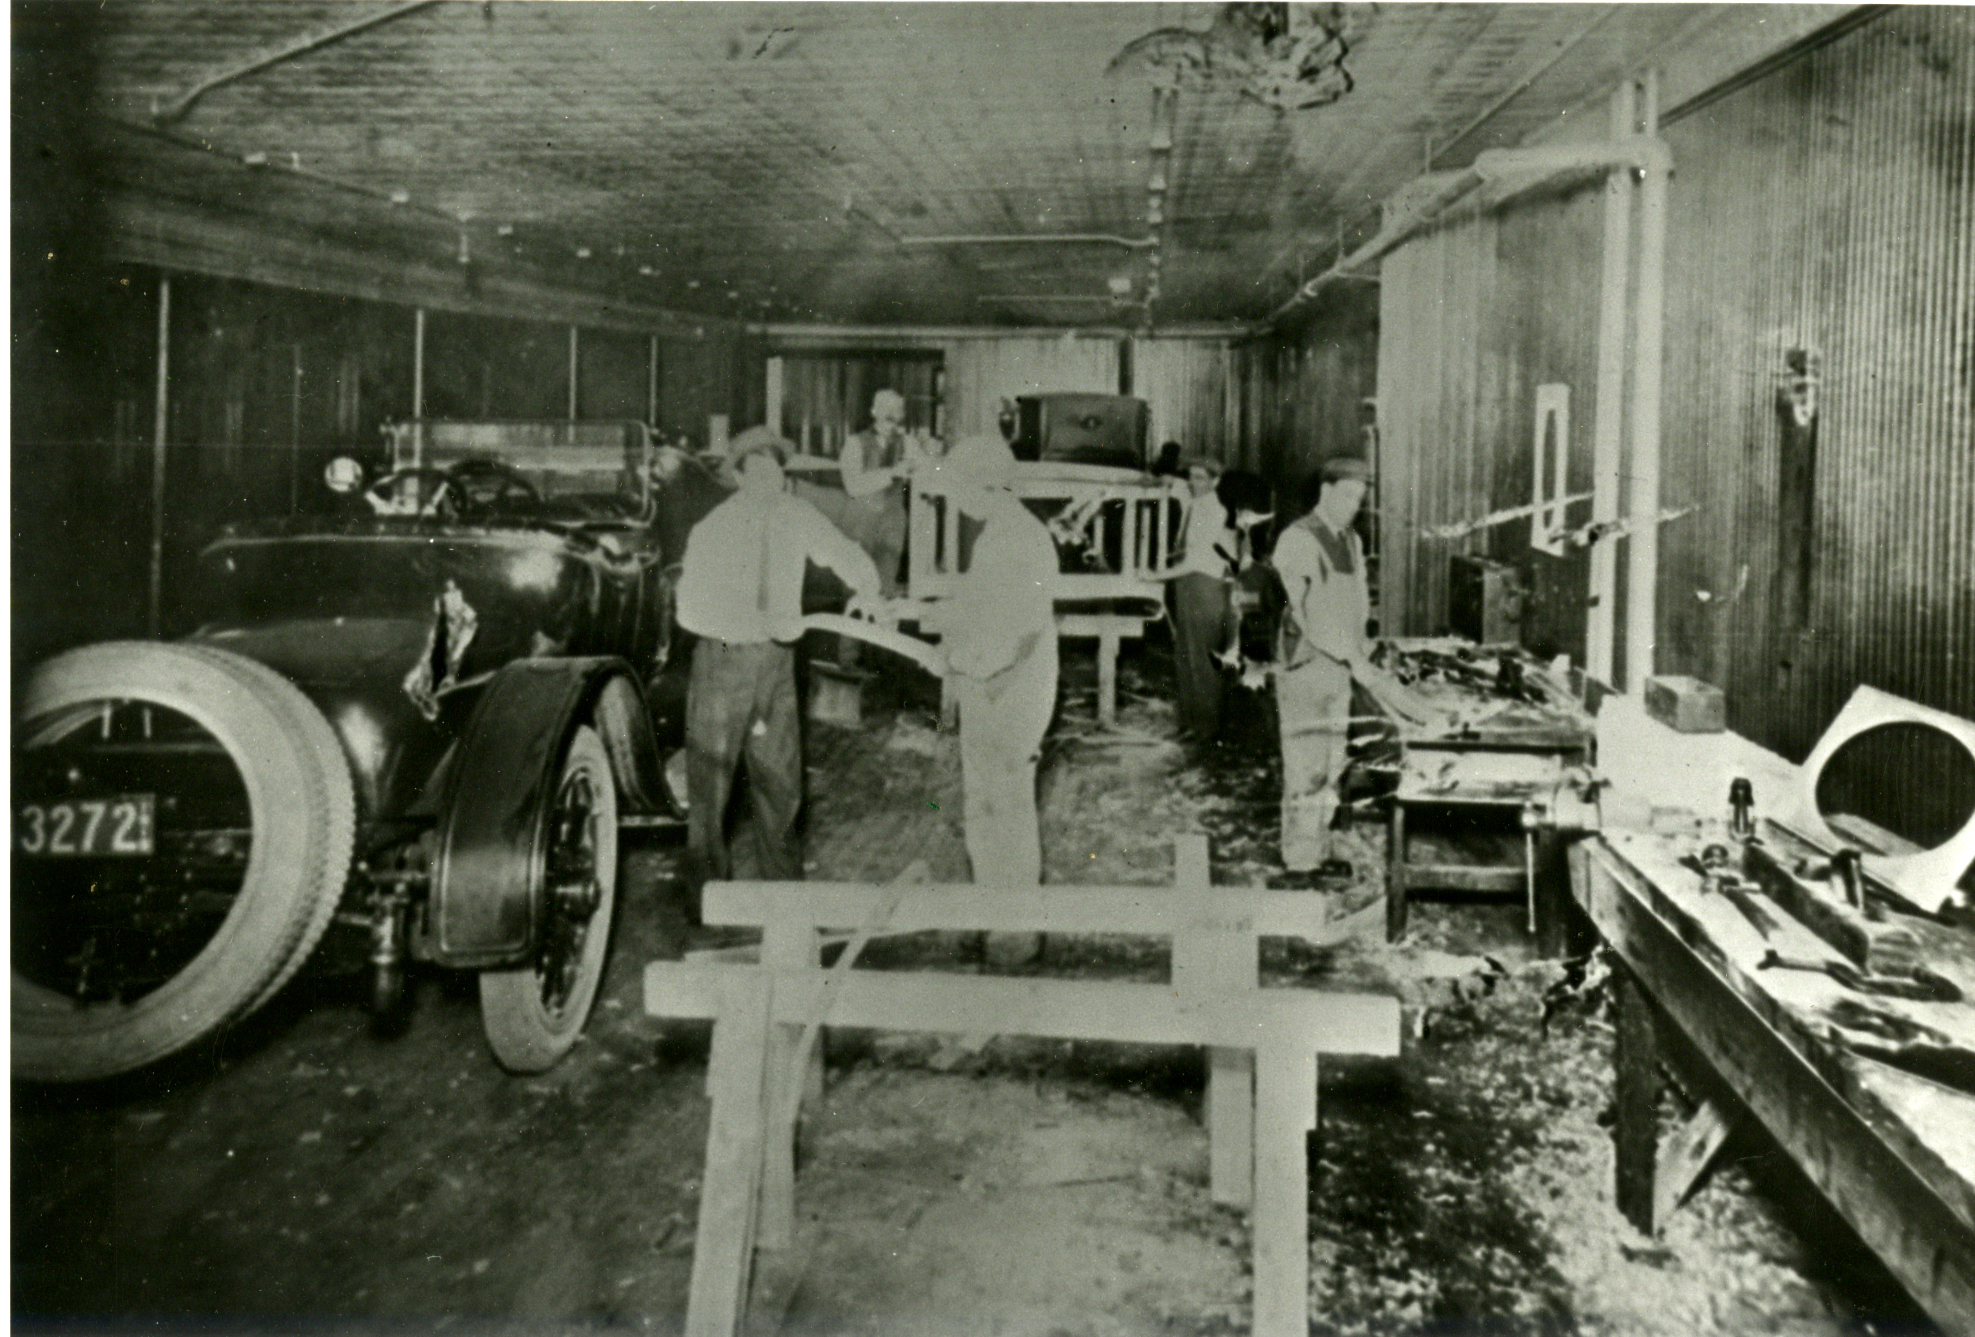 Historical Image Of Men Manufacturing A Rolls-Royce Automobile